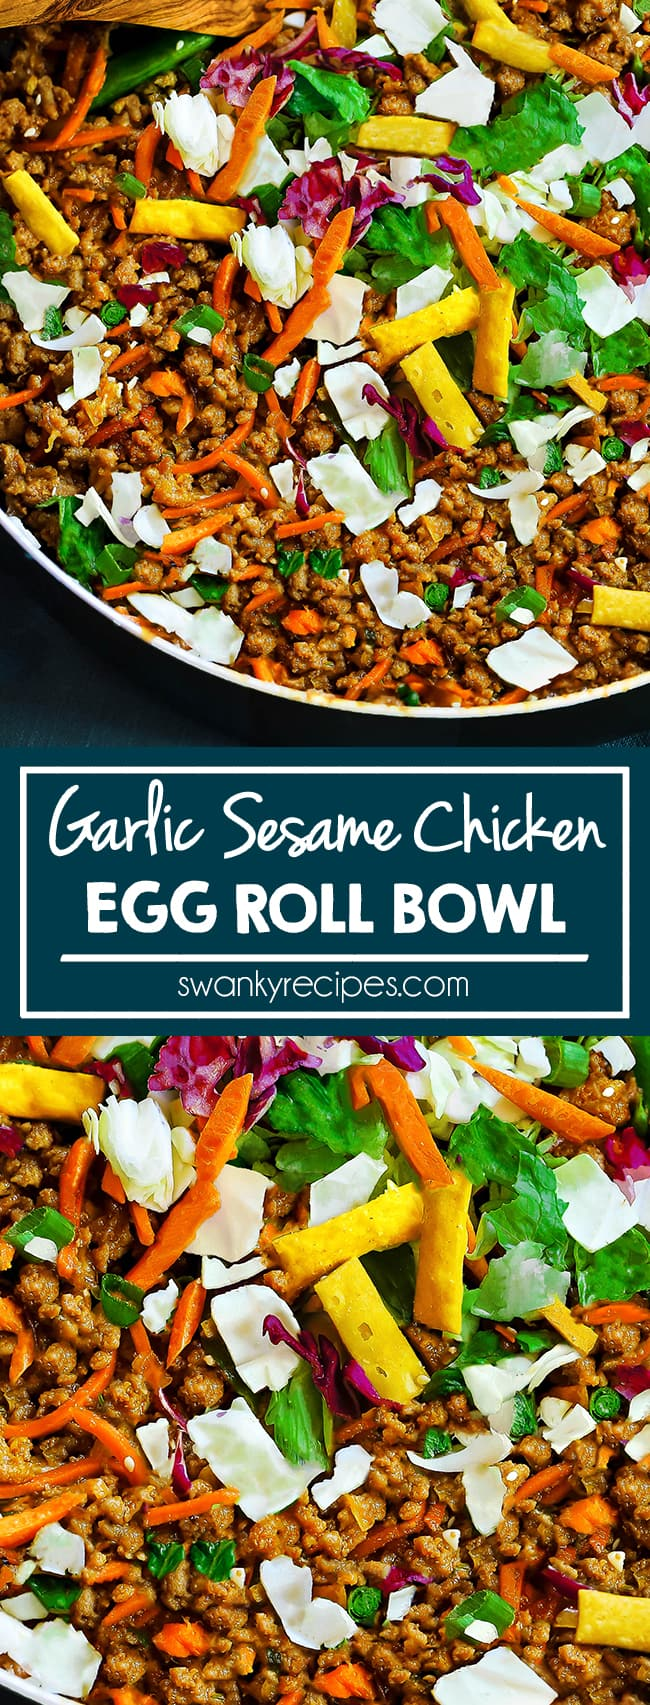 Egg Roll Bowl - Quick, easy 15 minute chicken egg rolls in a bowl with garlic sesame honey sauce. Skip the wrapper and use wonton crisps. Healthy Asian chicken recipe with cabbage and vegetables.